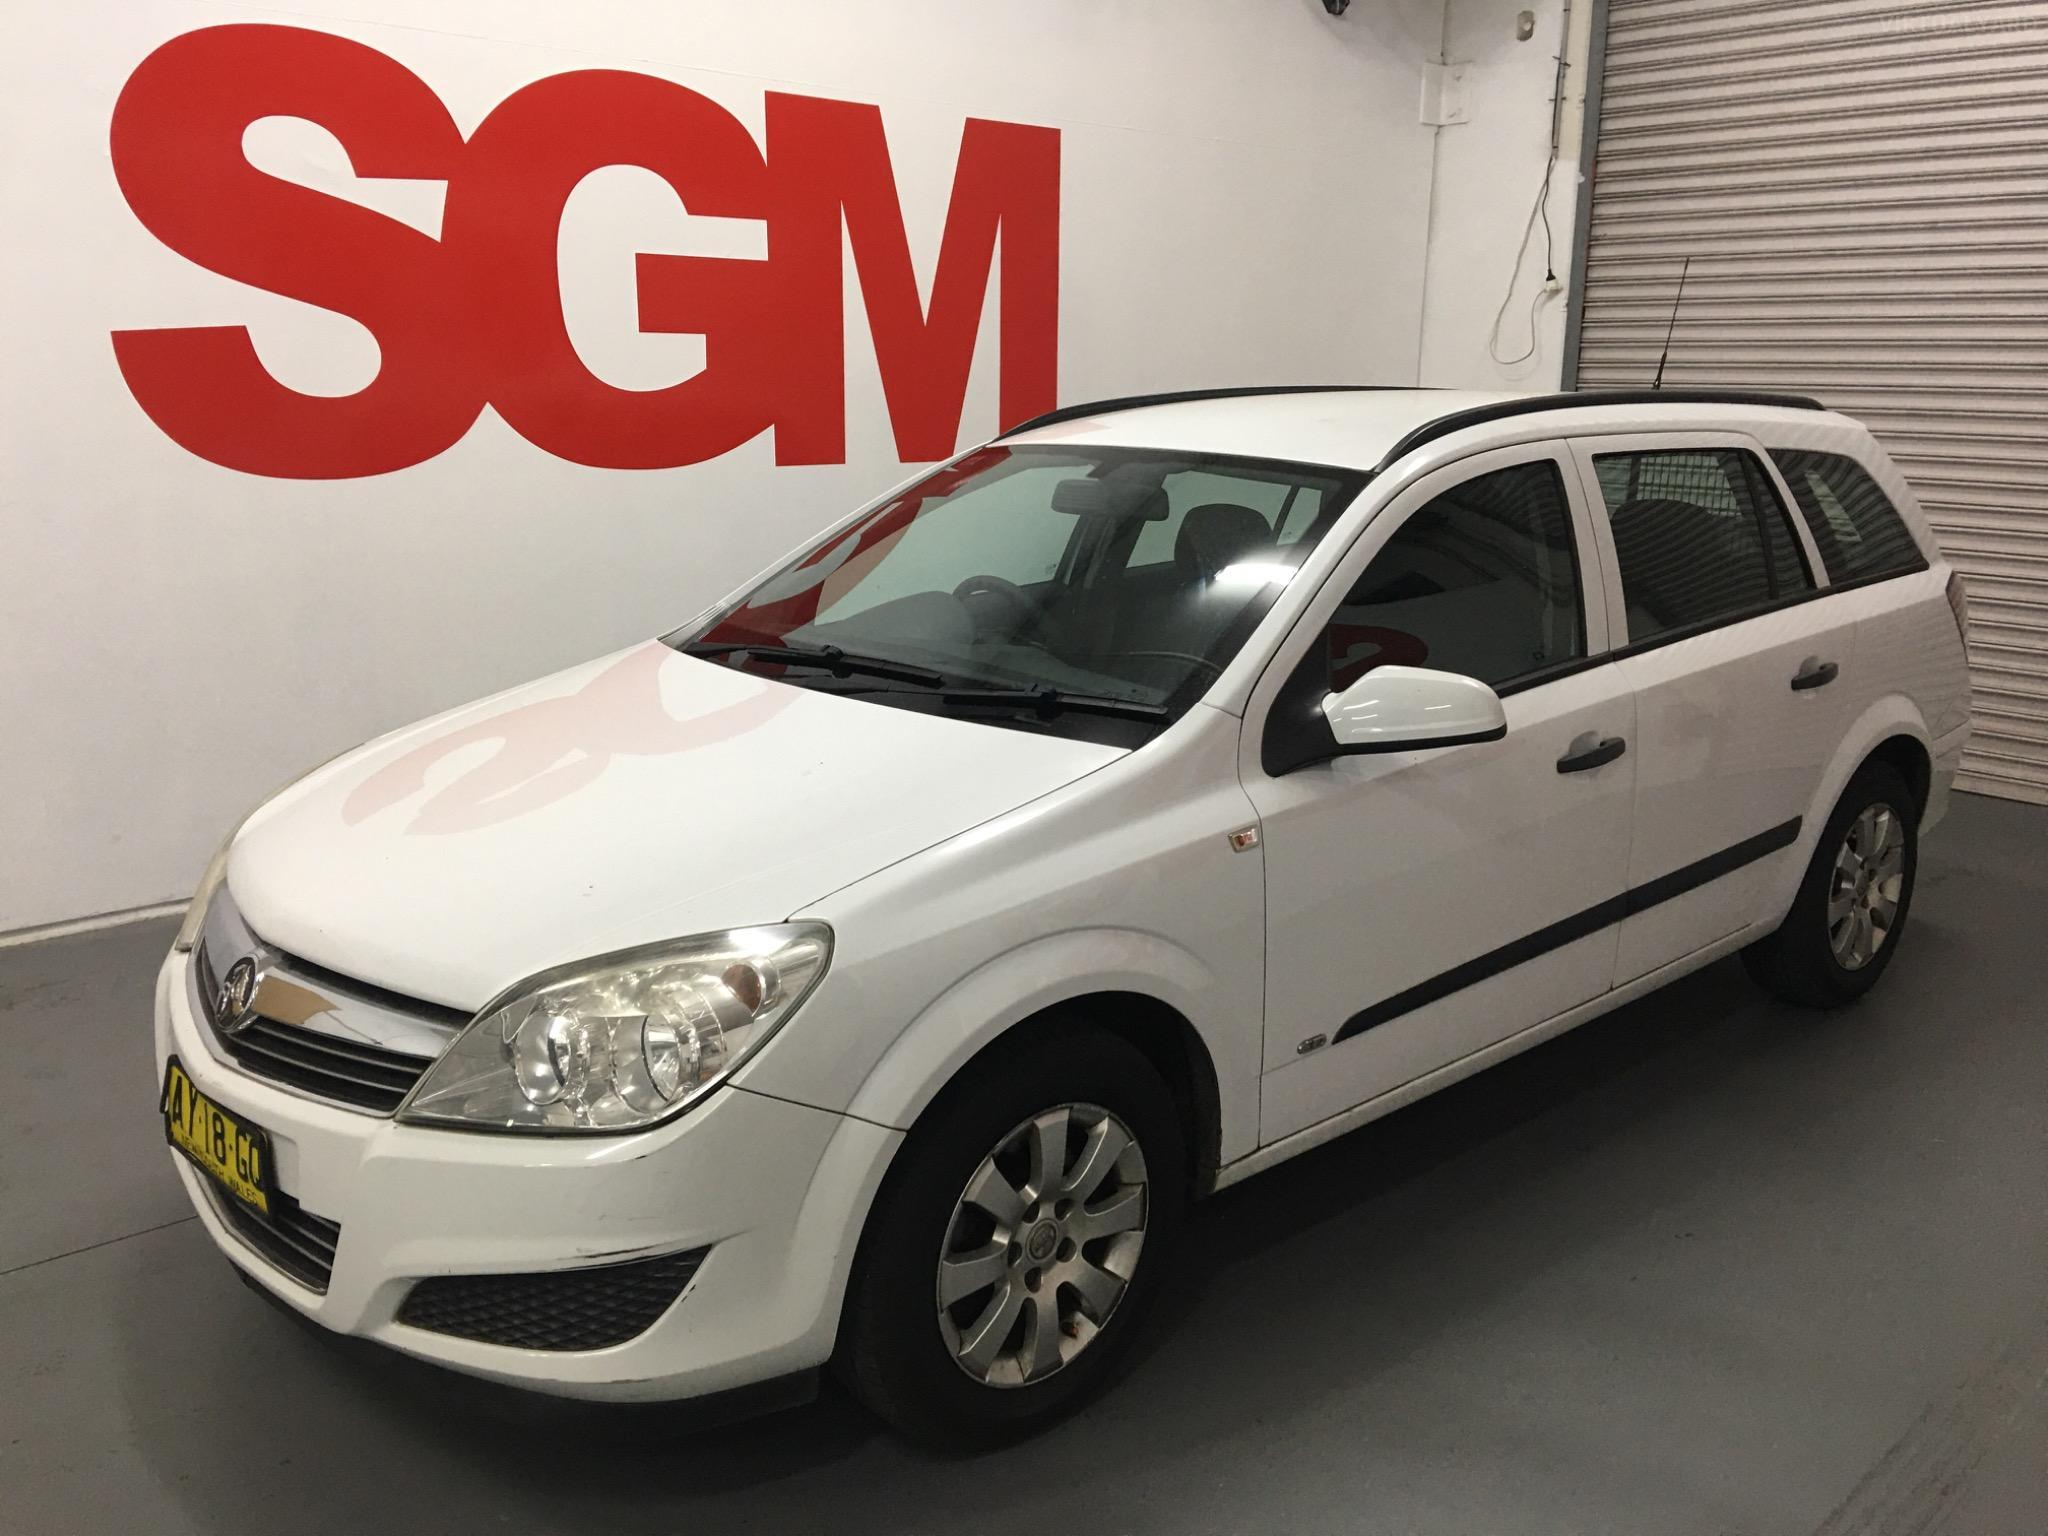 2008 Holden Astra AH CD Wagon 4dr Auto 4sp 1.8i Picture 8